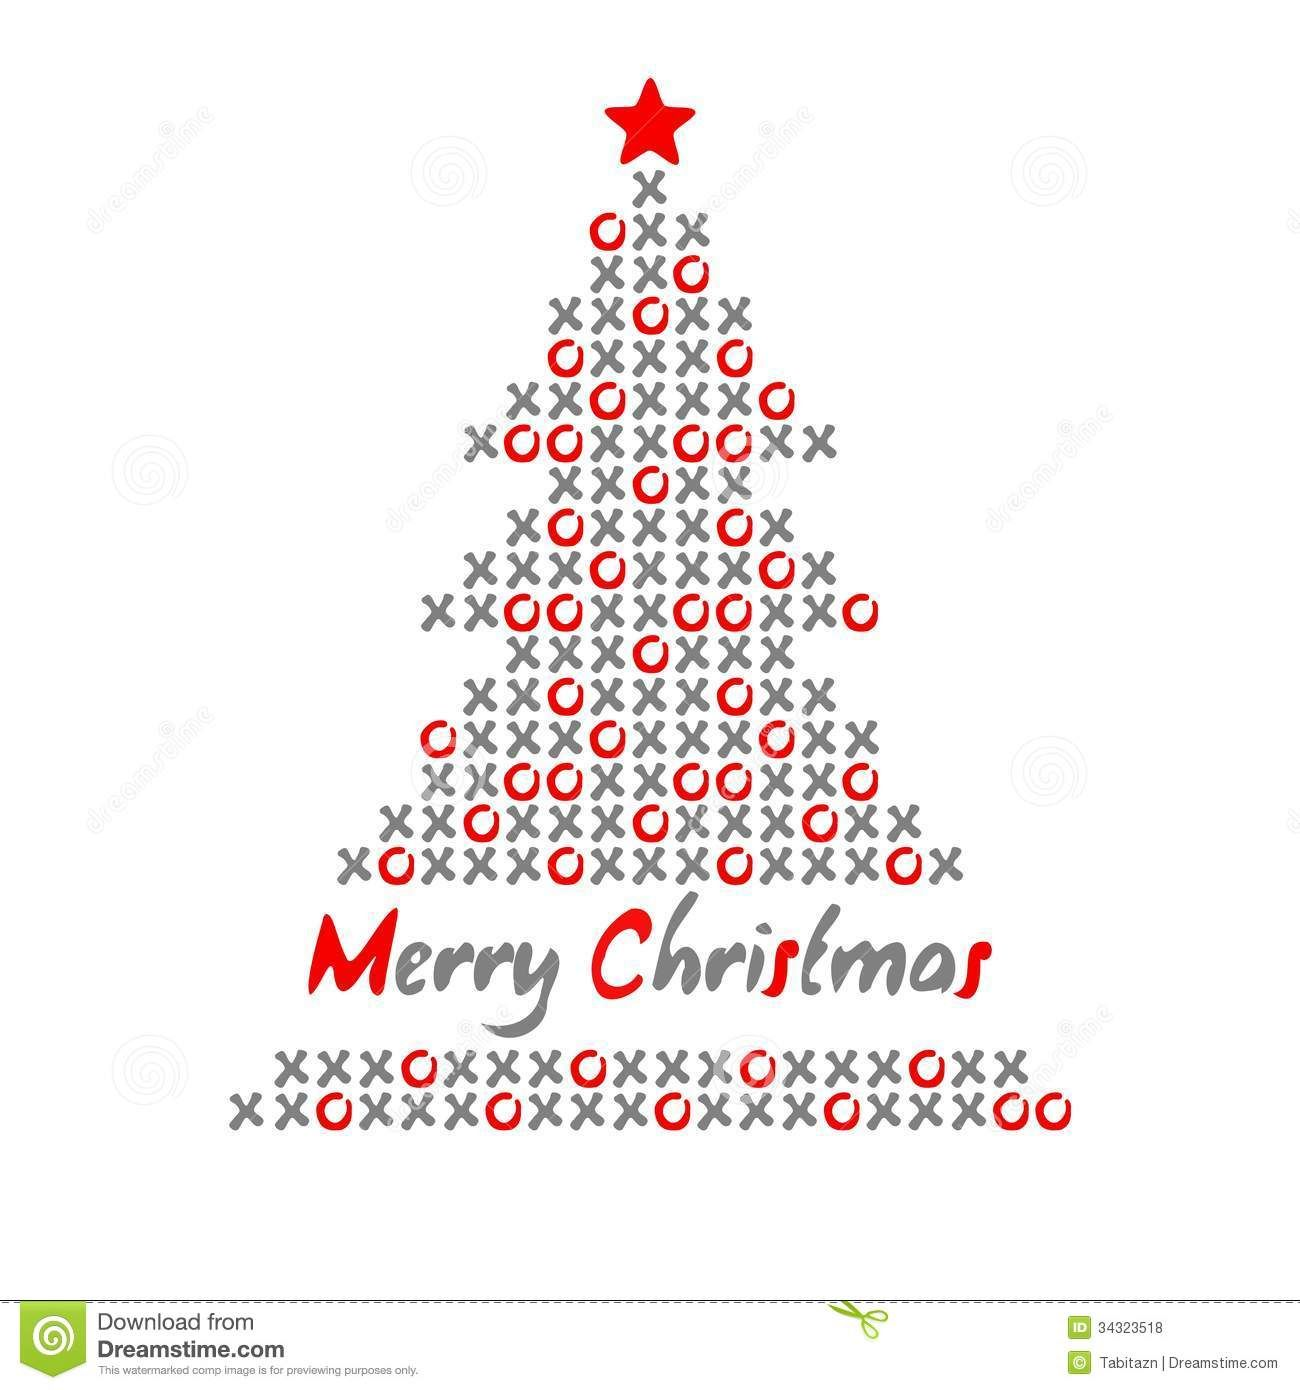 Modern Christmas Tree Card With Noughts and crosses, Illustration Stock  Illustration - Image: 34323518